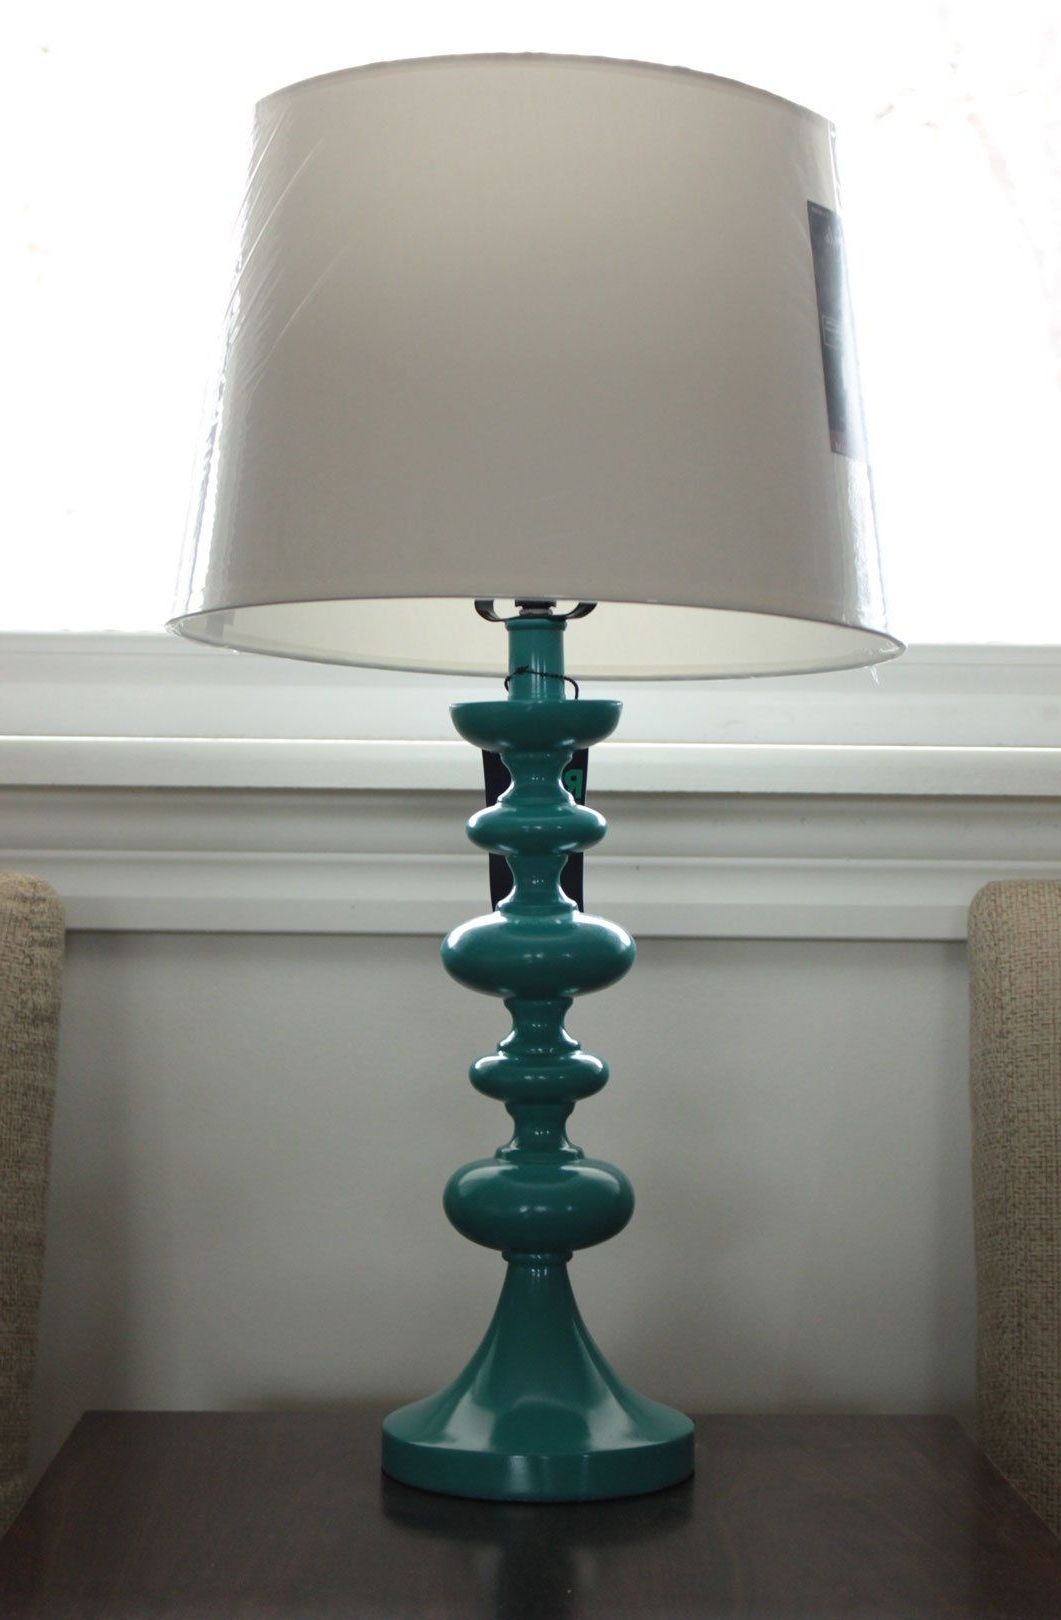 Living Room Table Lamps At Target Within Popular Target Table Lamp  Teal (View 10 of 20)